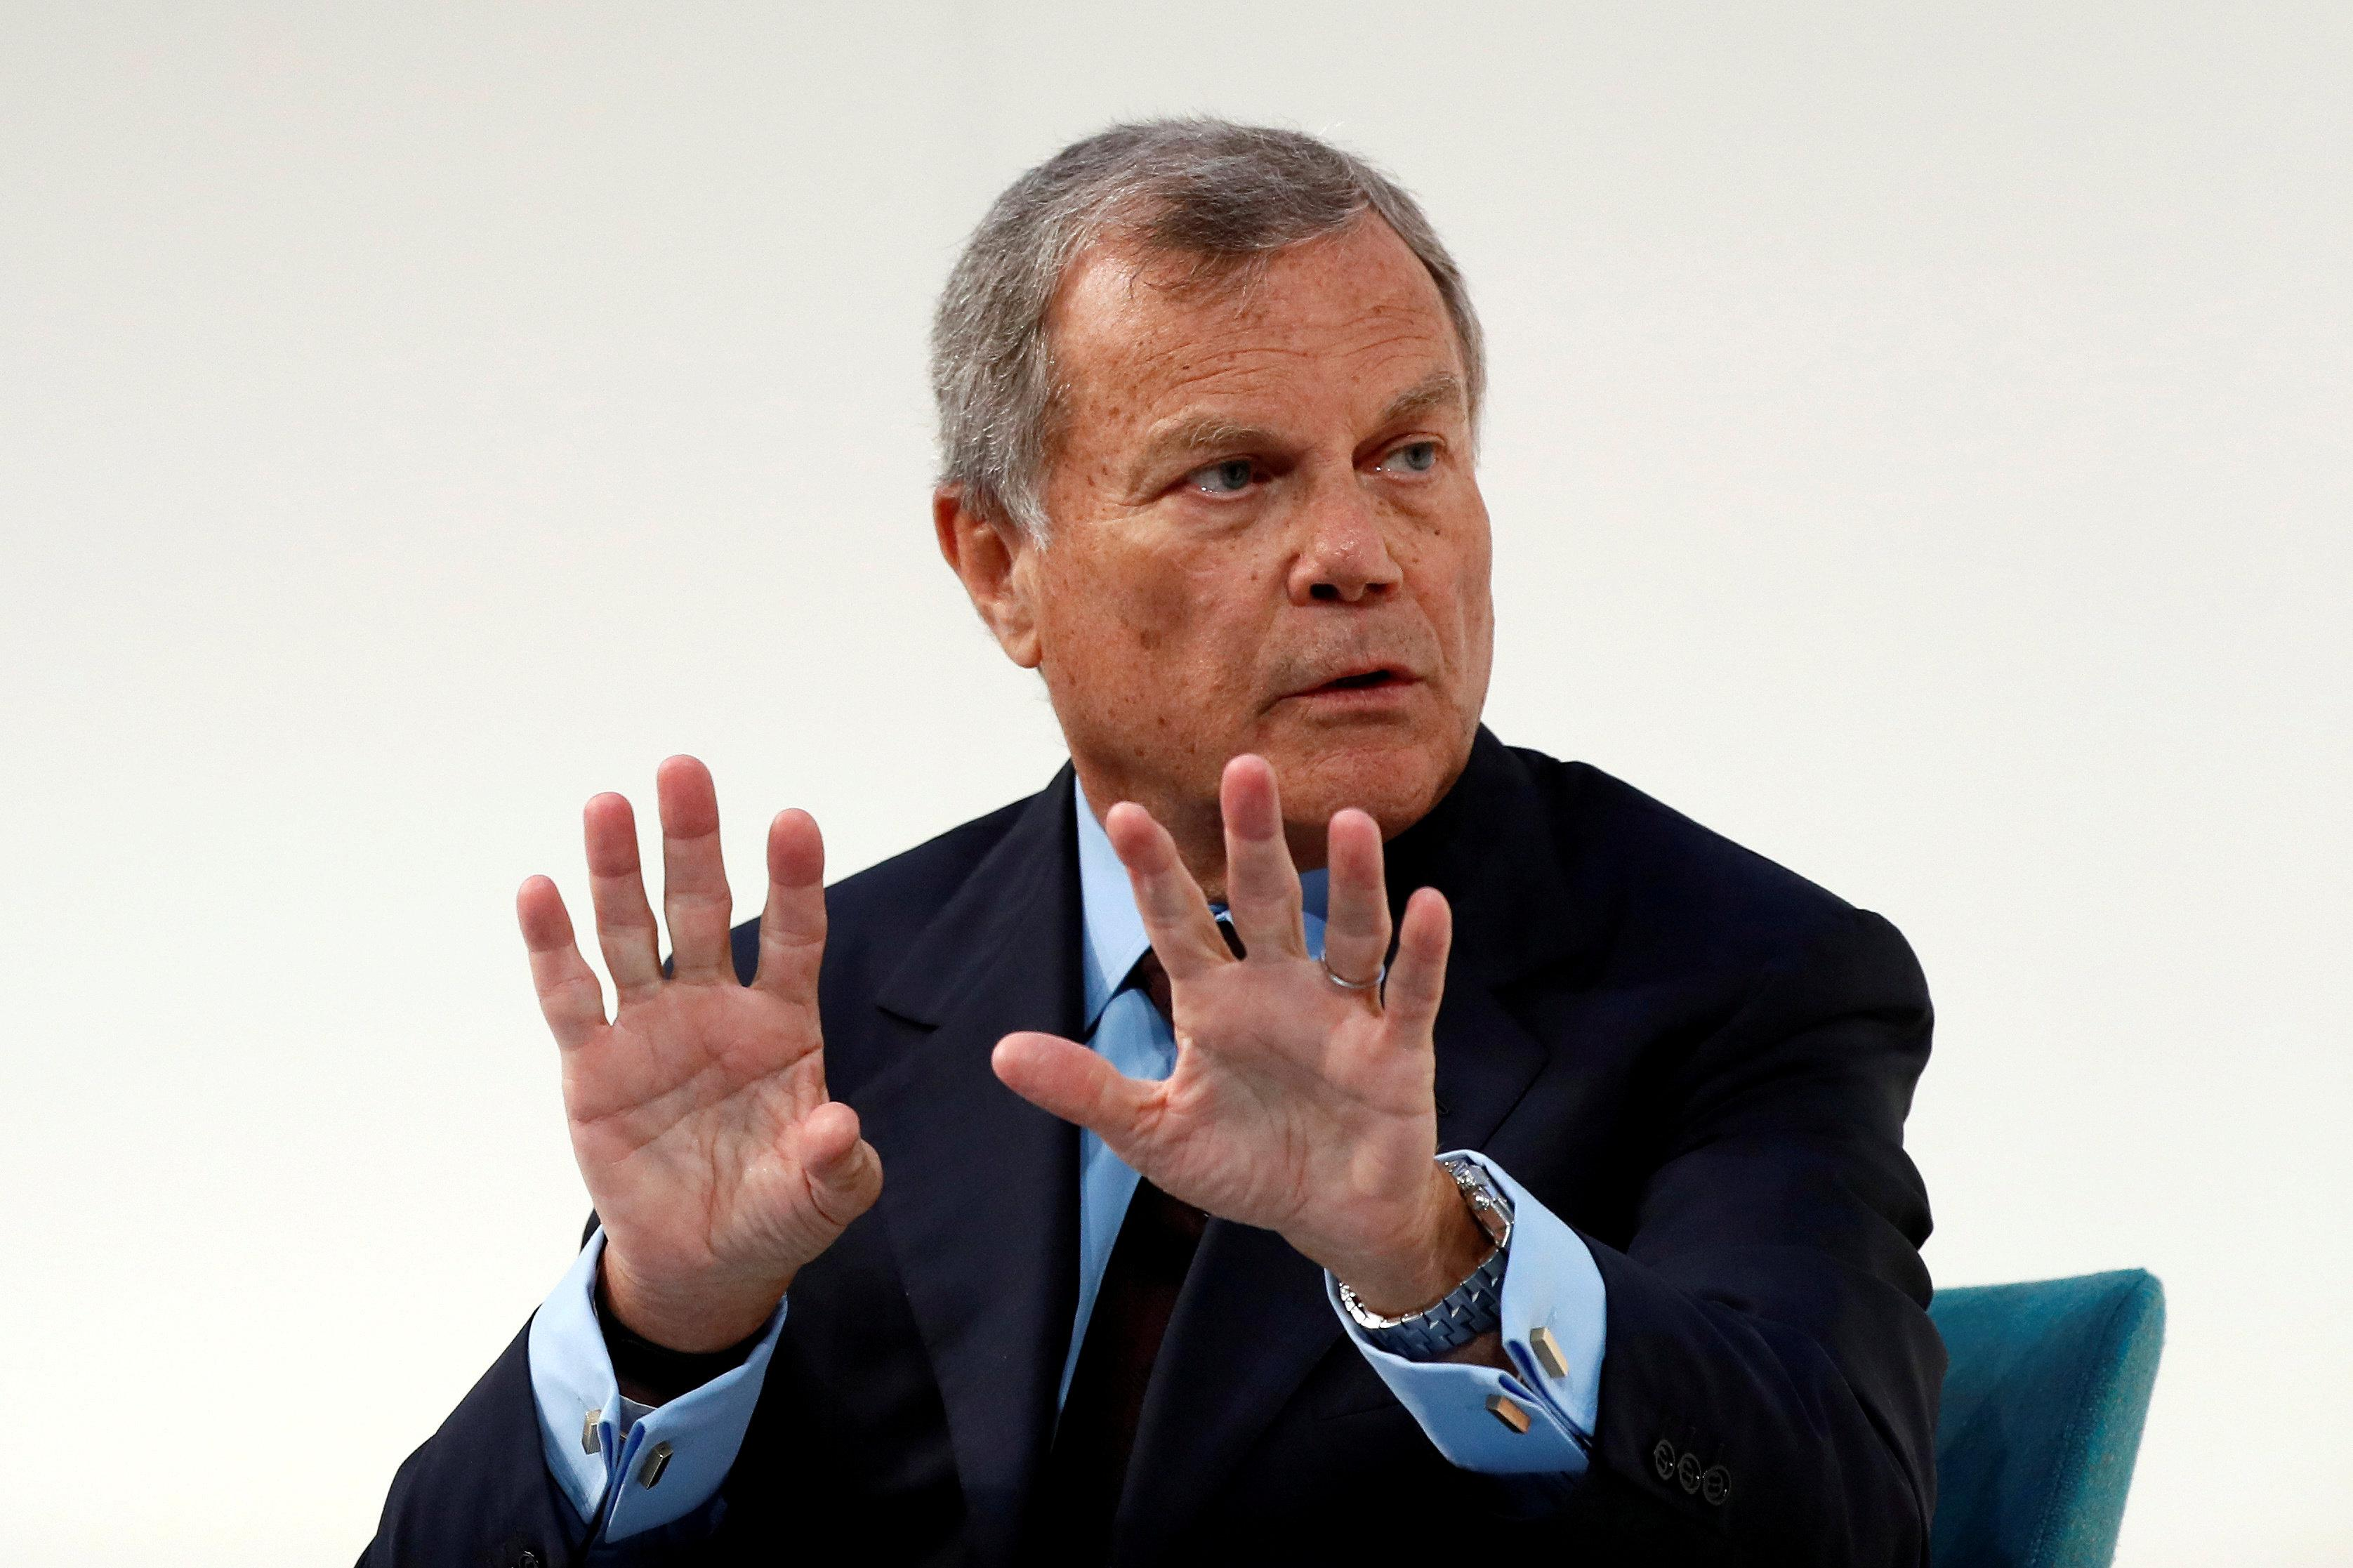 Martin Sorrell, chairman and chief executive officer of WPP, the world